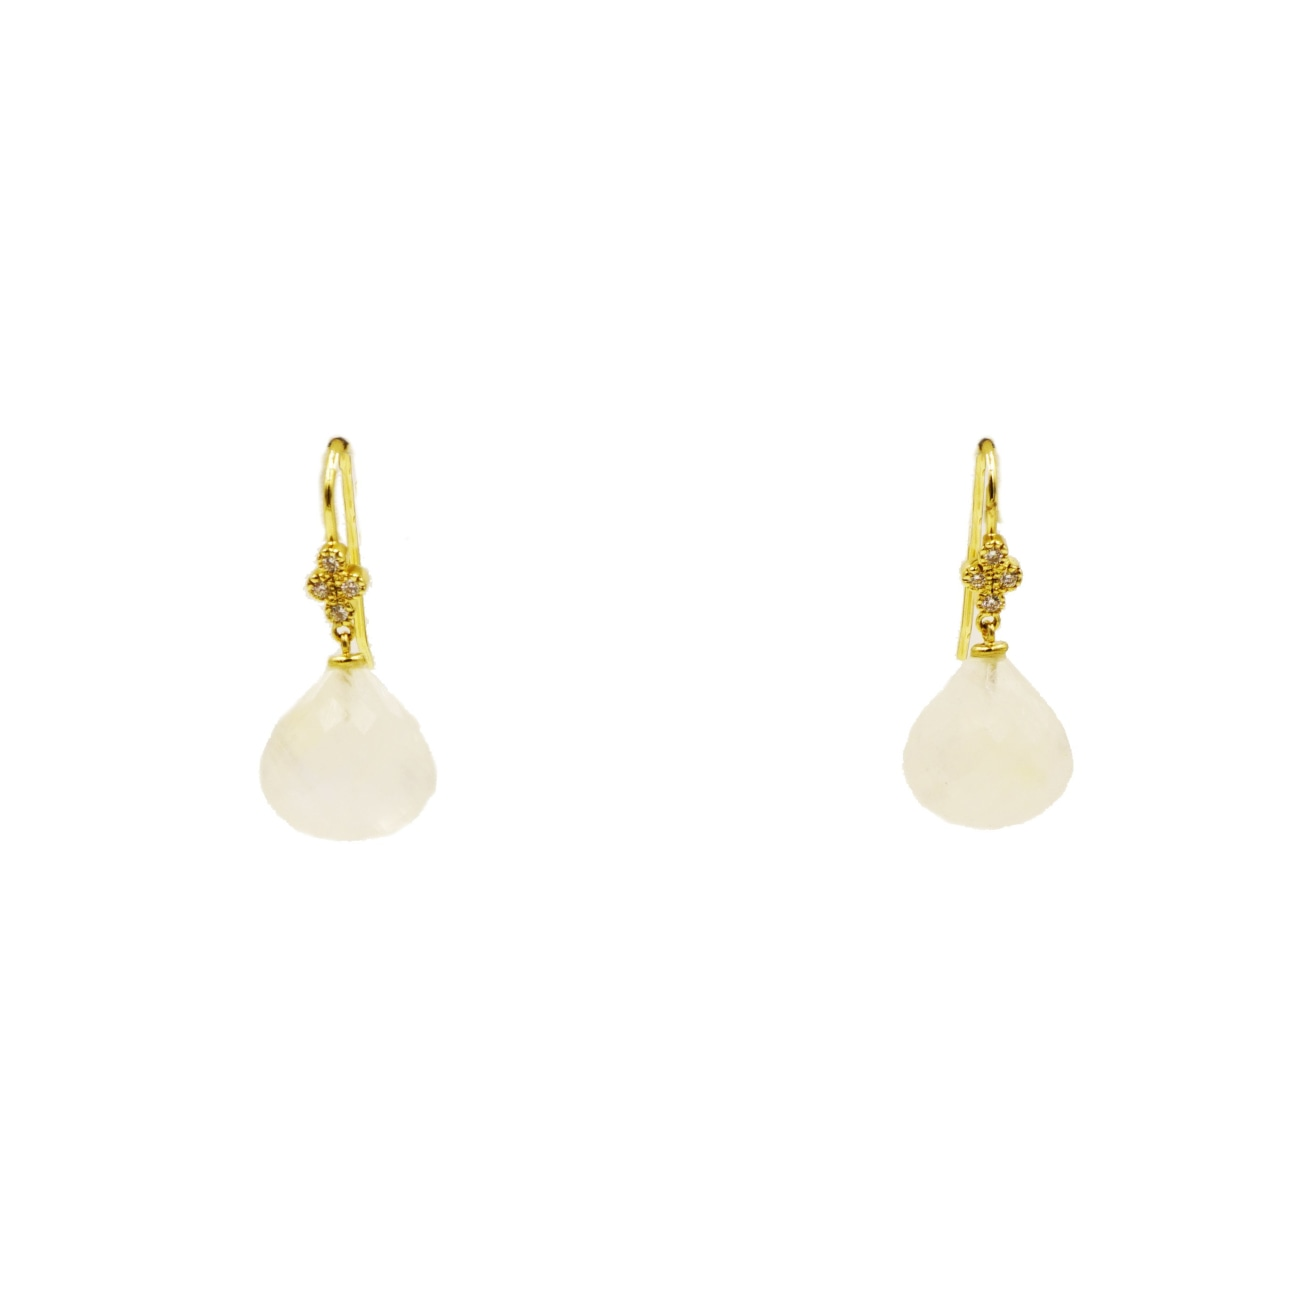 Lauren K Jewelry - Moonstone & Diamond Drop Yellow Gold Earrings | Manfredi Jewels